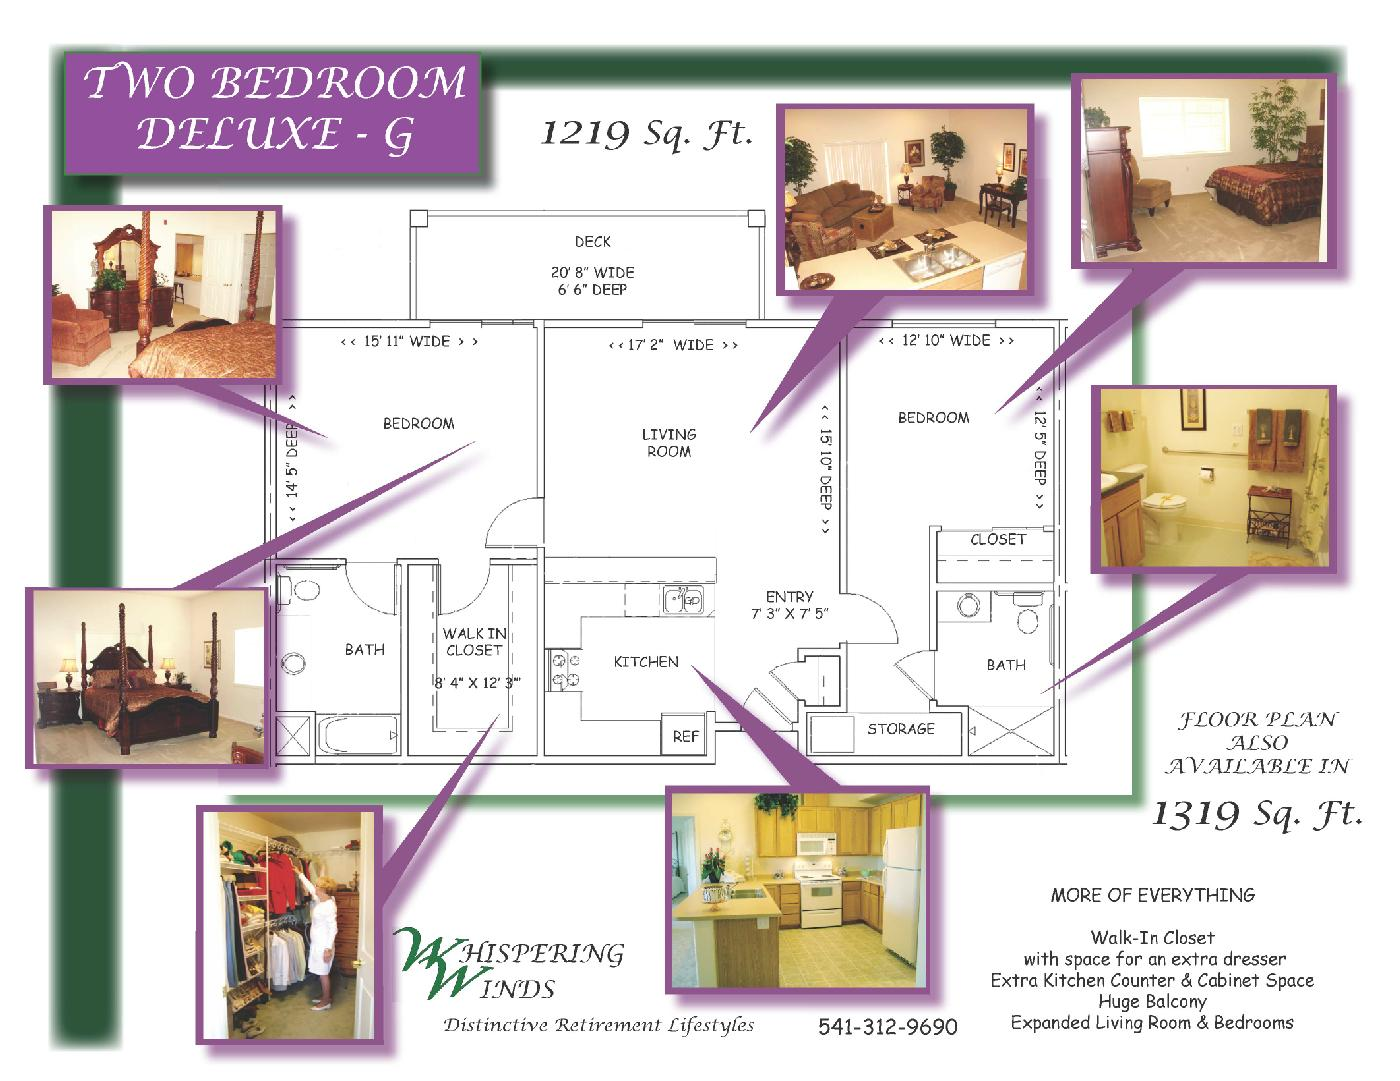 Layout Example - Two Bedroom Deluxe - G